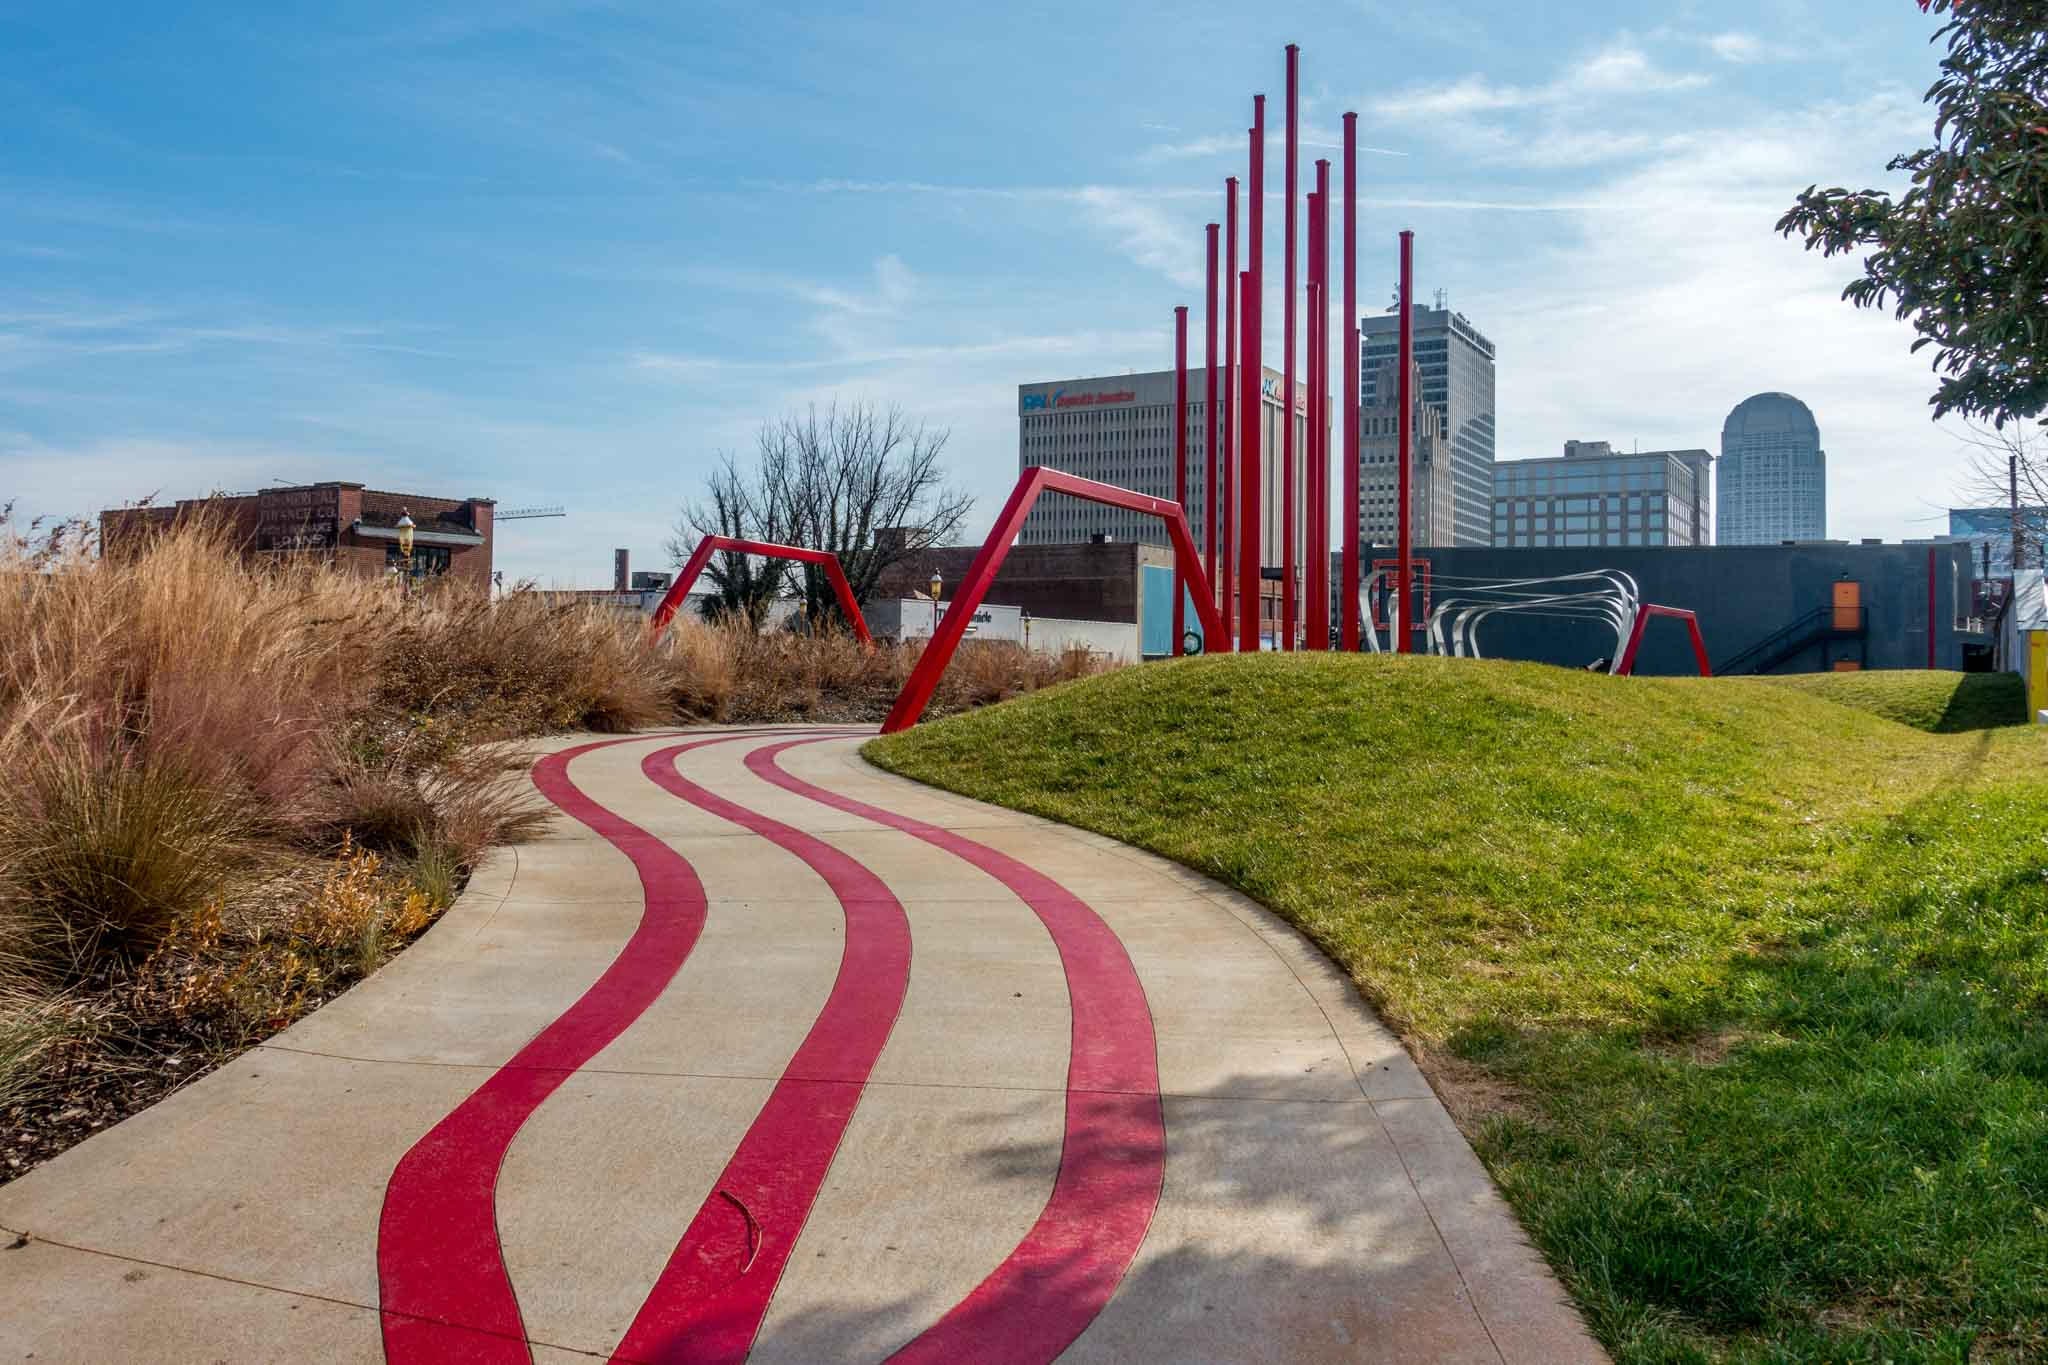 Outdoor artworks including a red sidewalk trail leading to a red sculpture